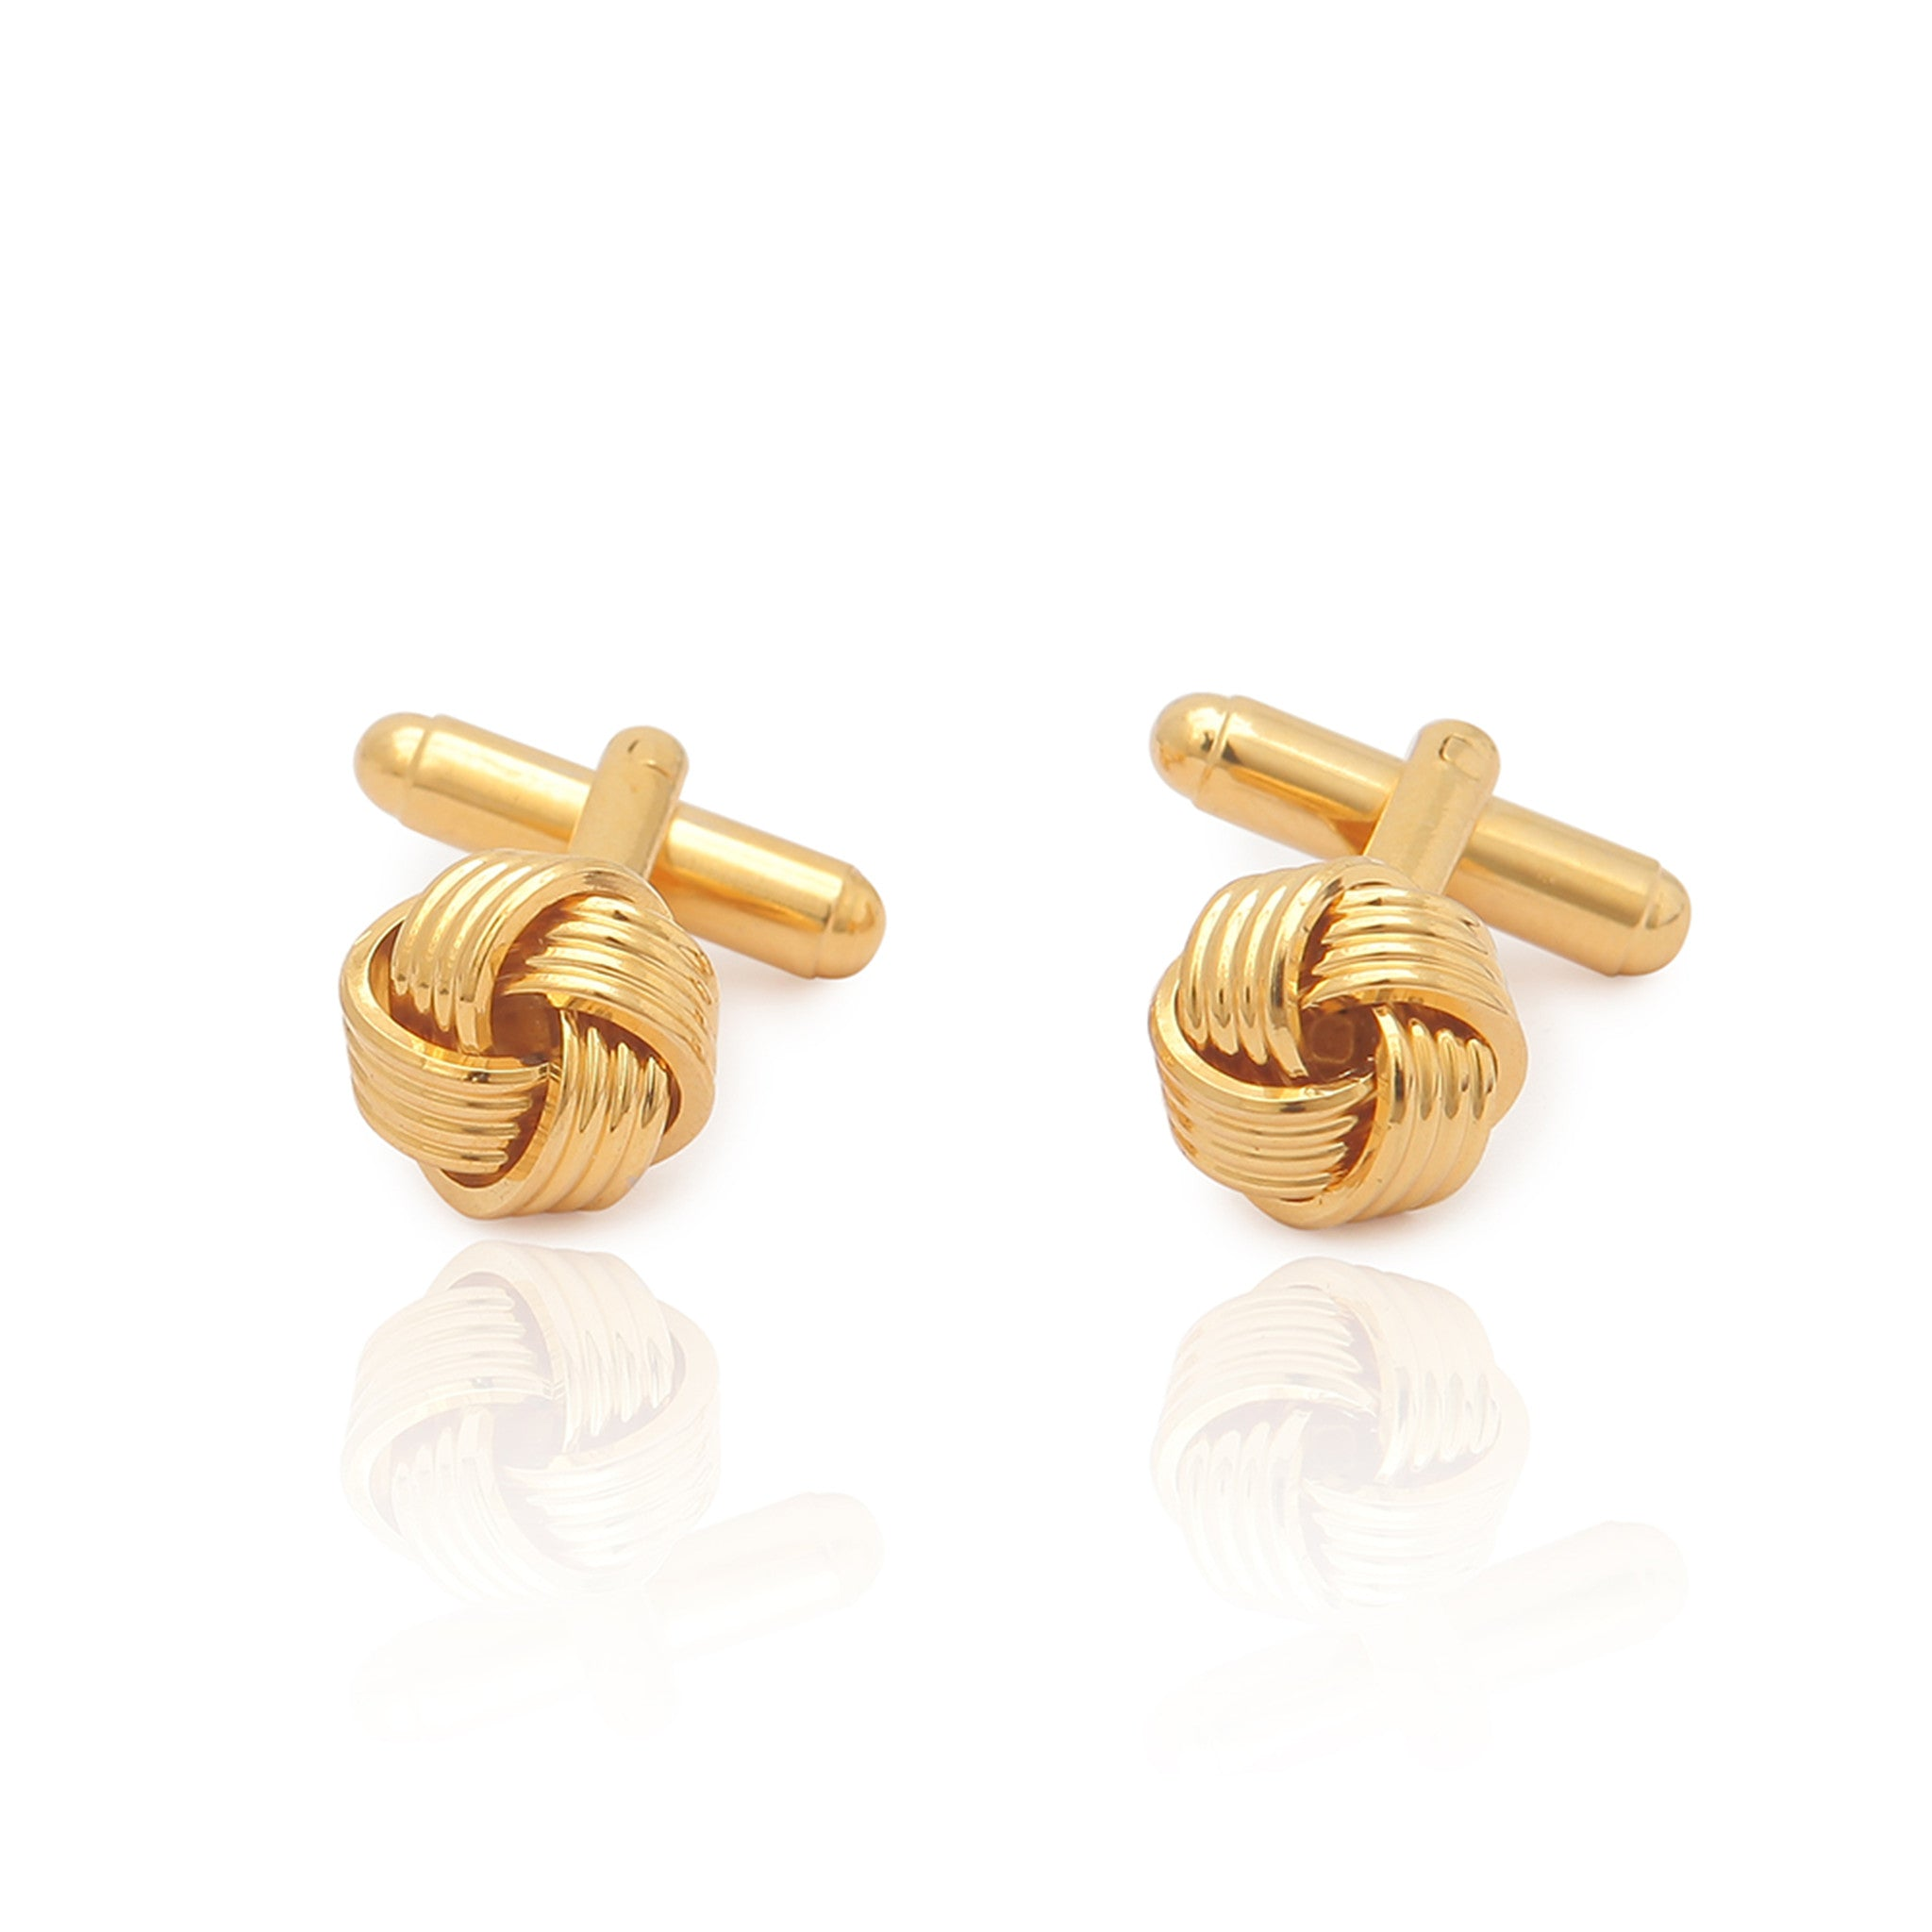 Imported Gold Cufflinks